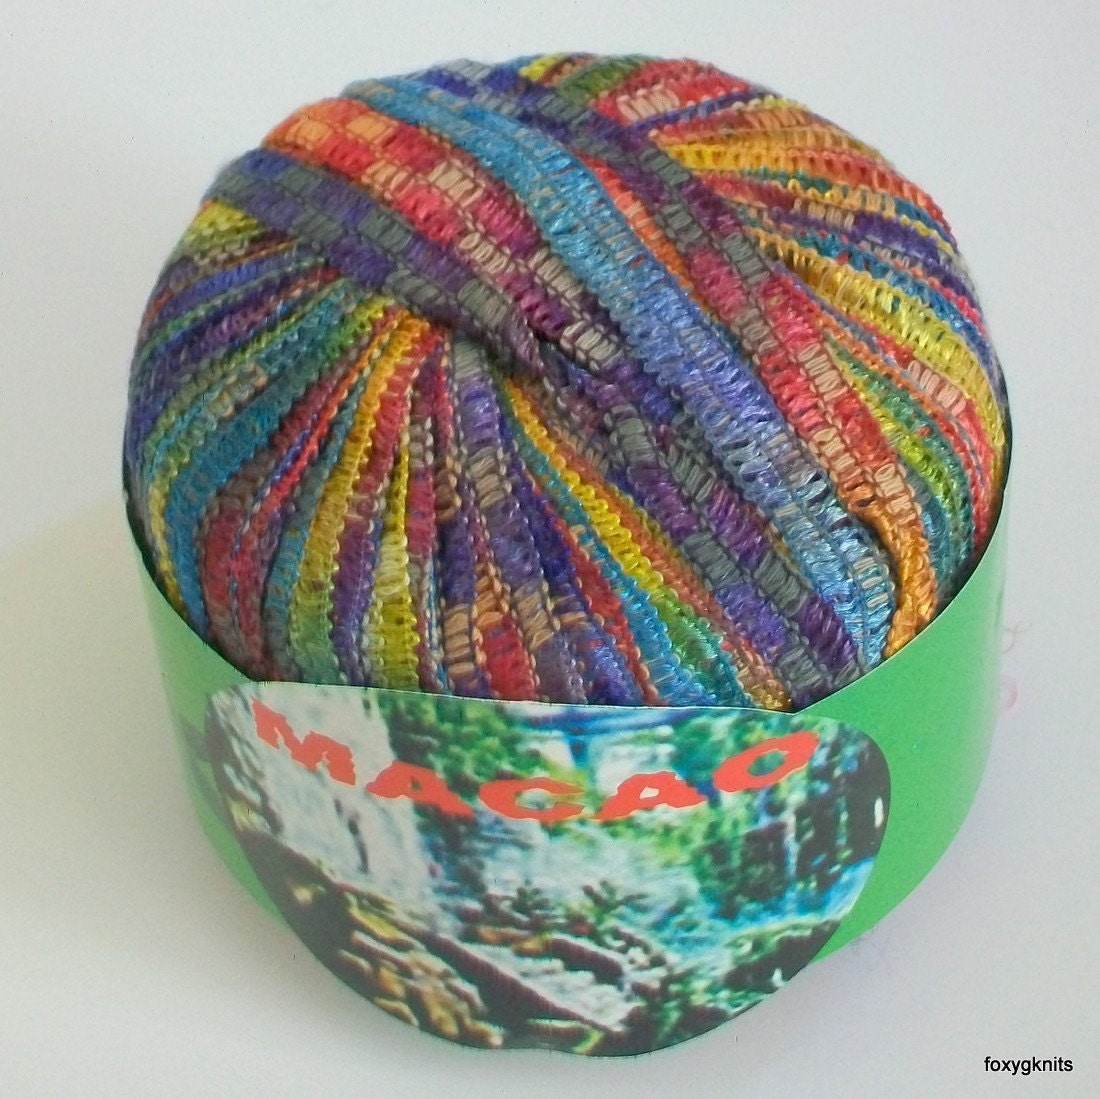 Ribbon Yarn Knitting Fever Macao Multi-color 518 By FoxyGknits